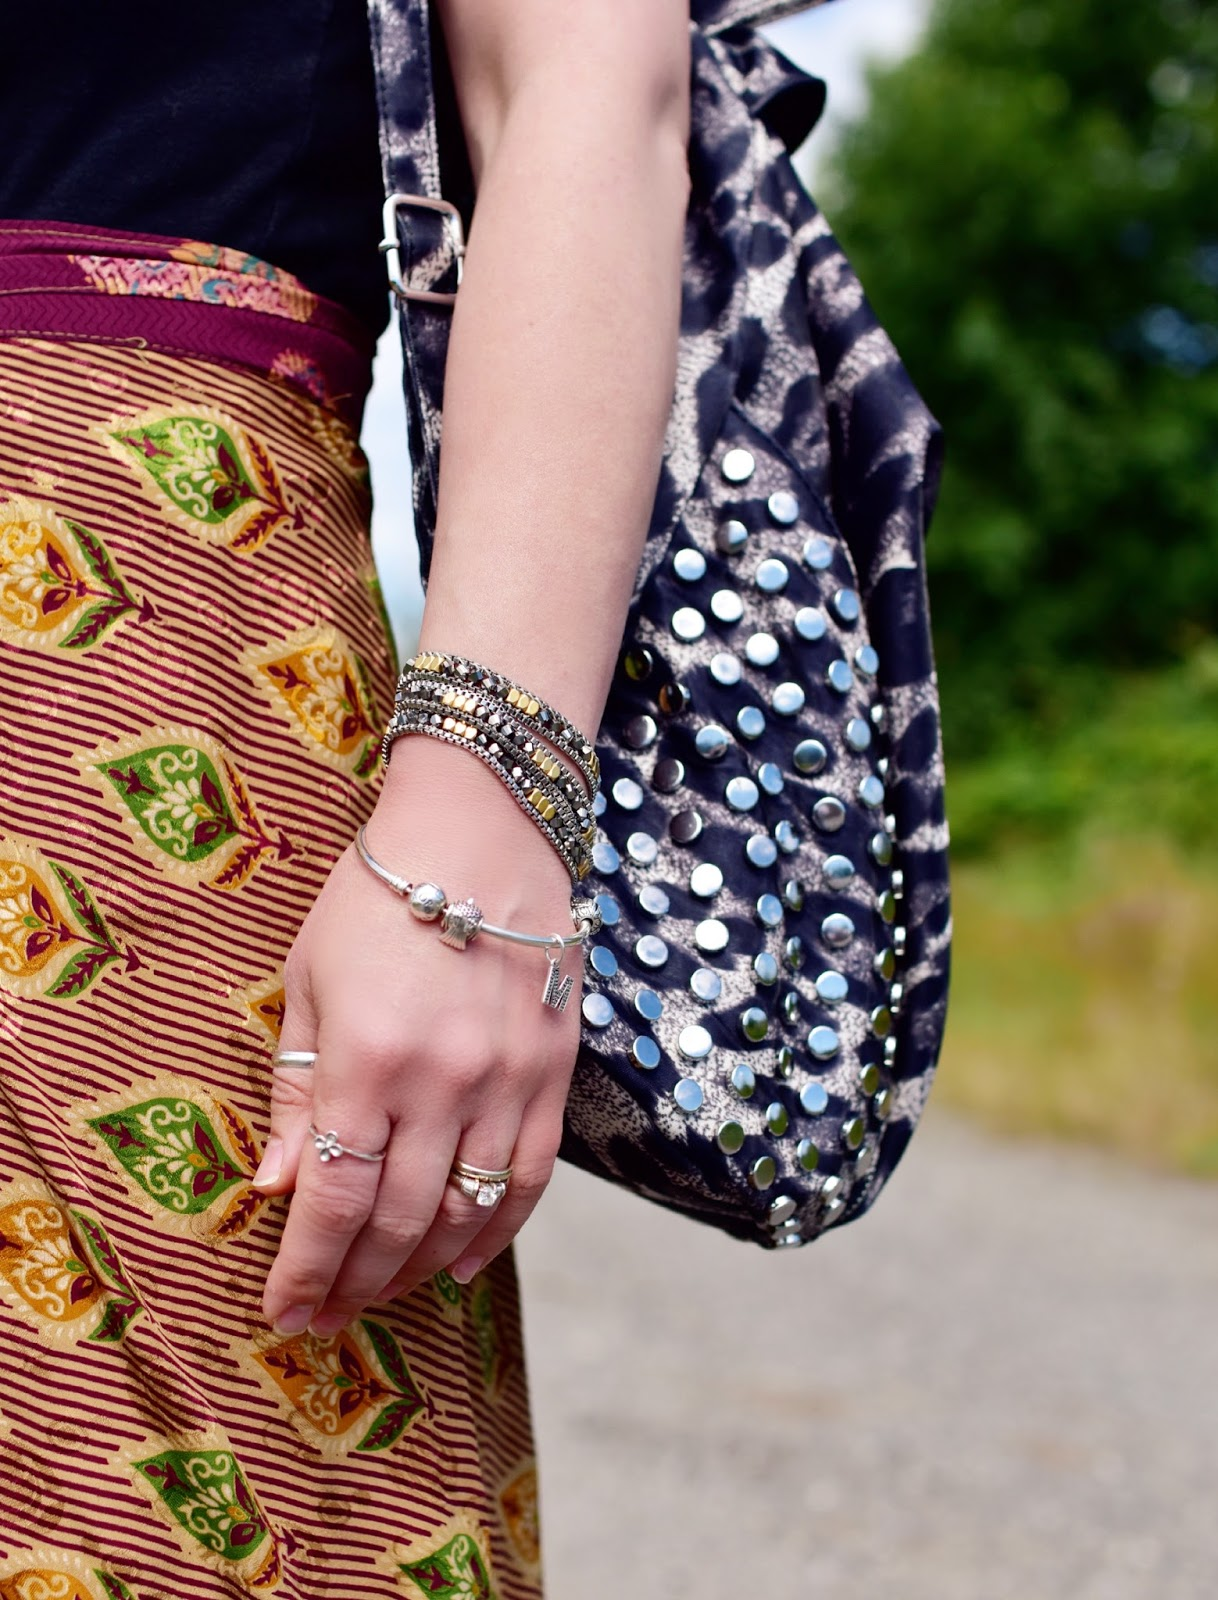 silk wrap skirt, leopard-patterned backpack